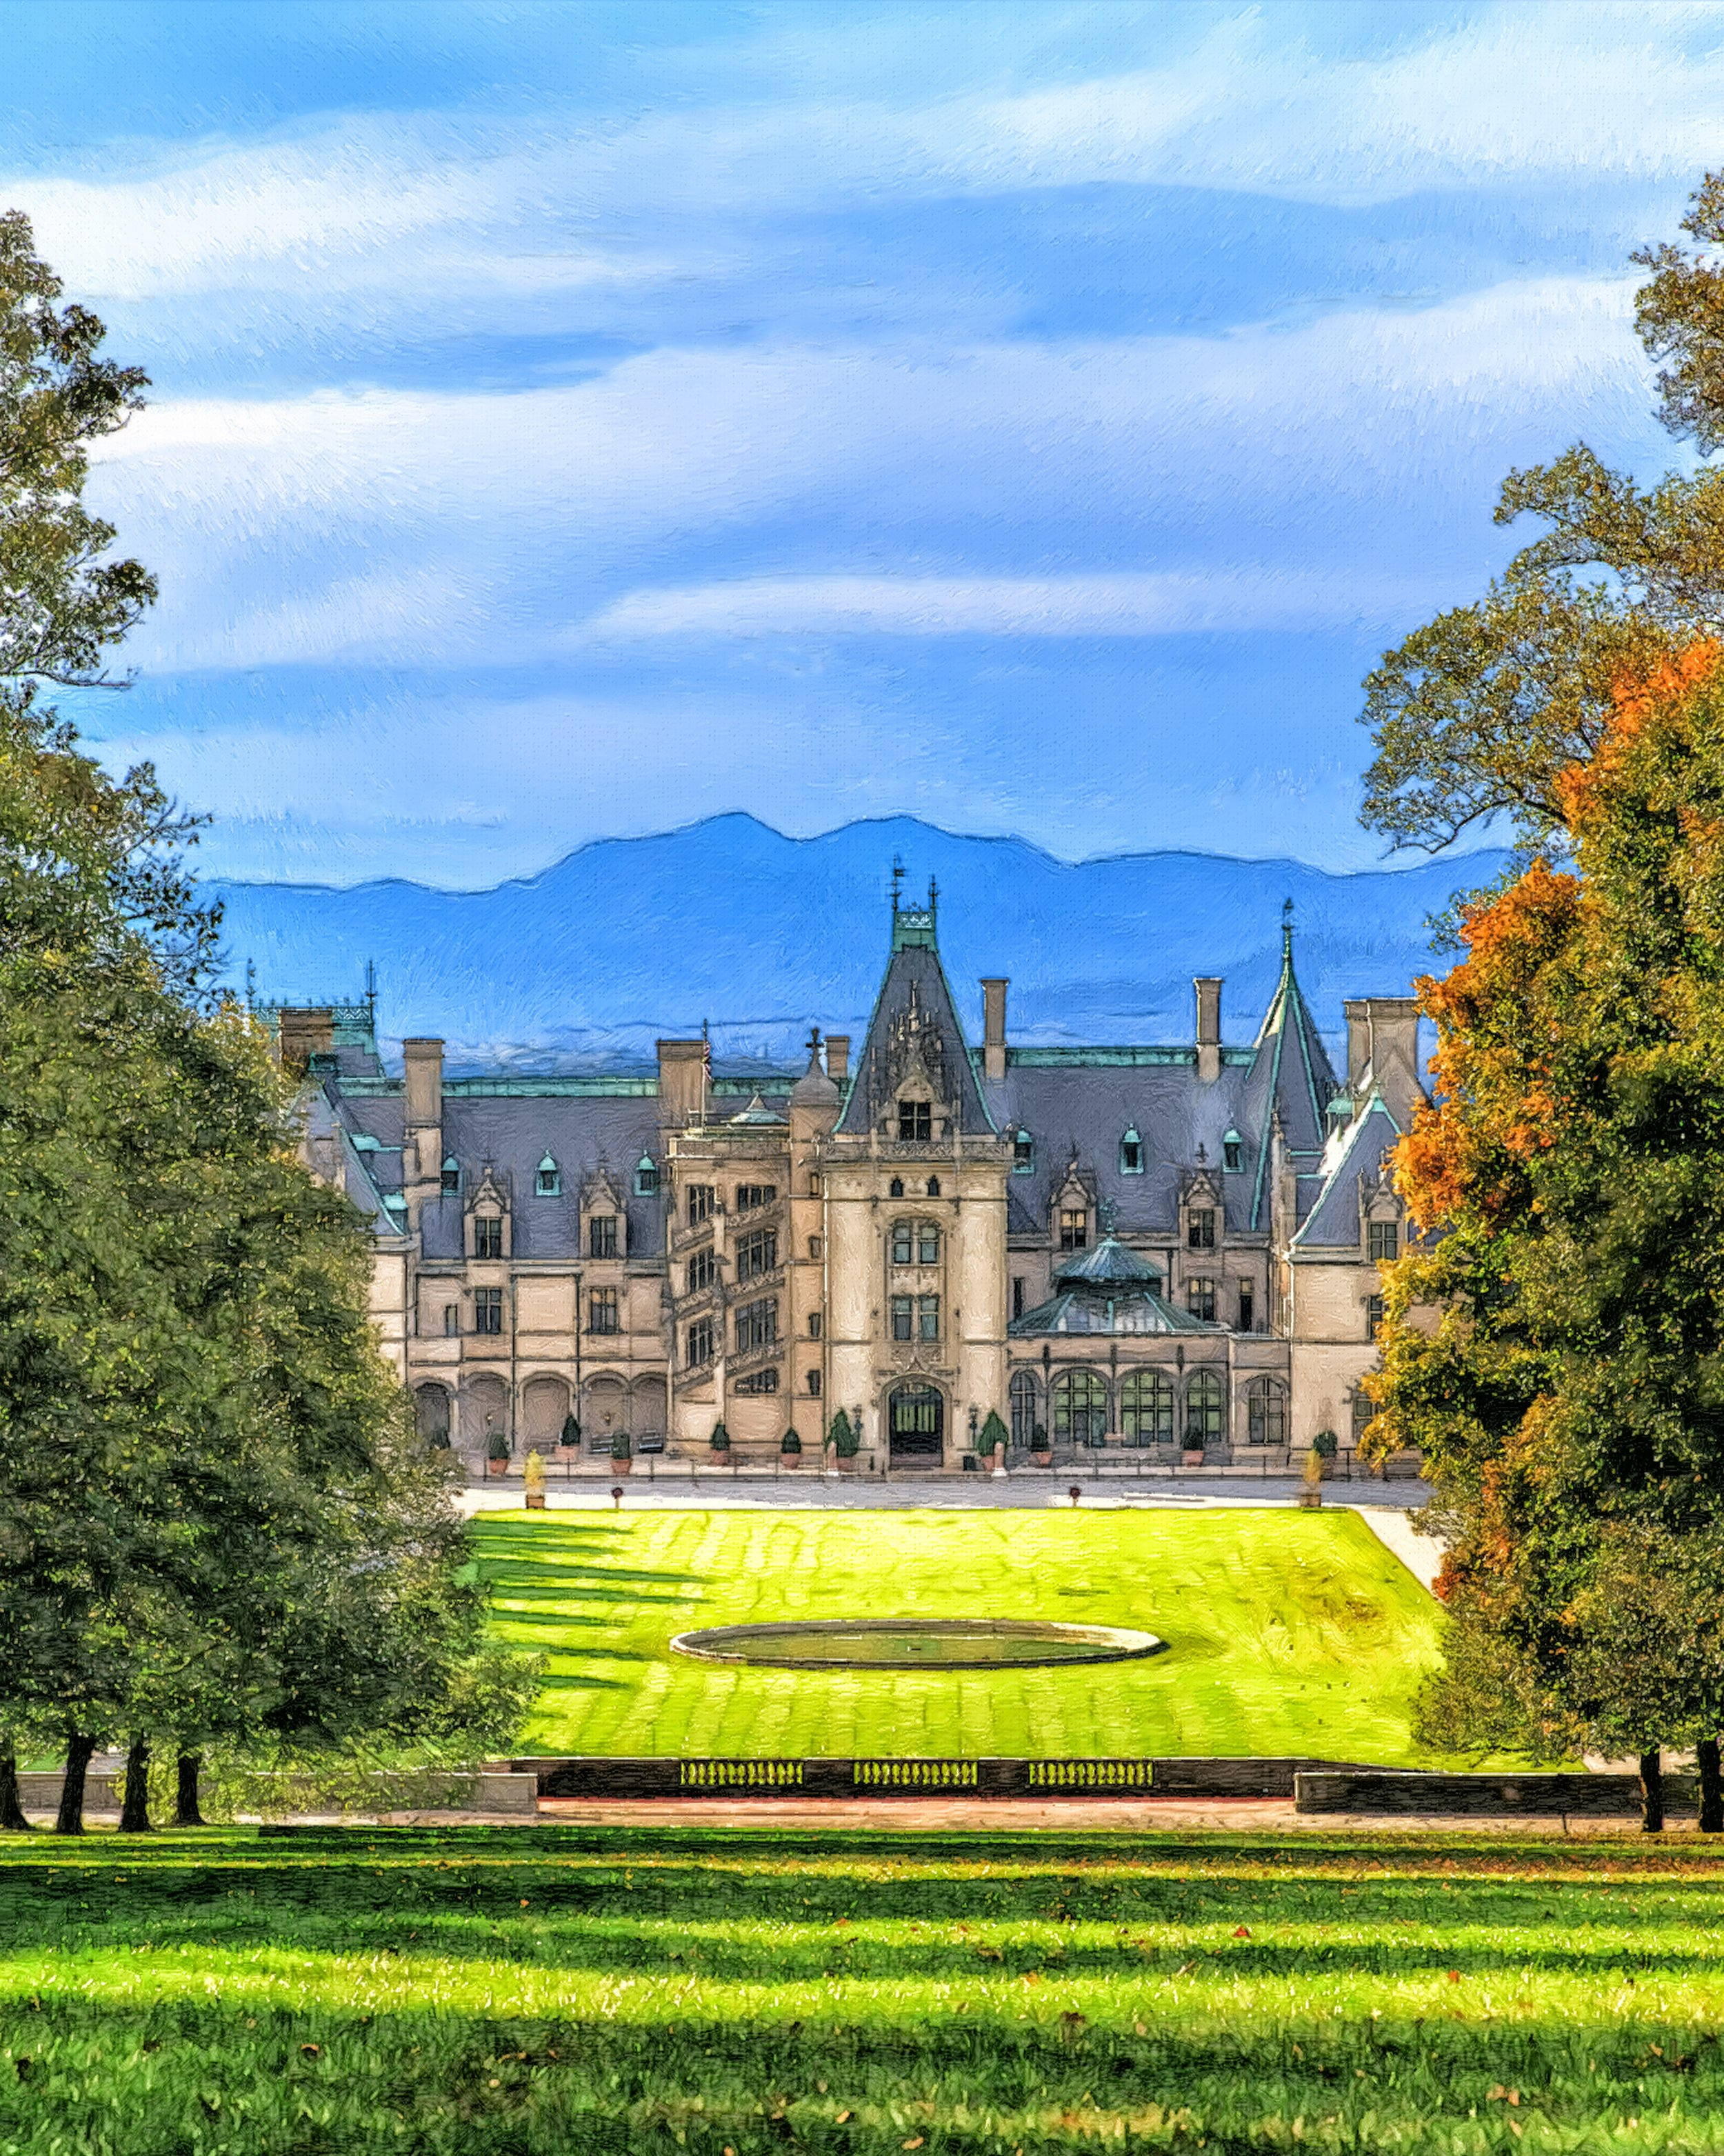 The biltmore estate, the largest privately owned home in america, and most popular wedding destination in asheville, north carolina.